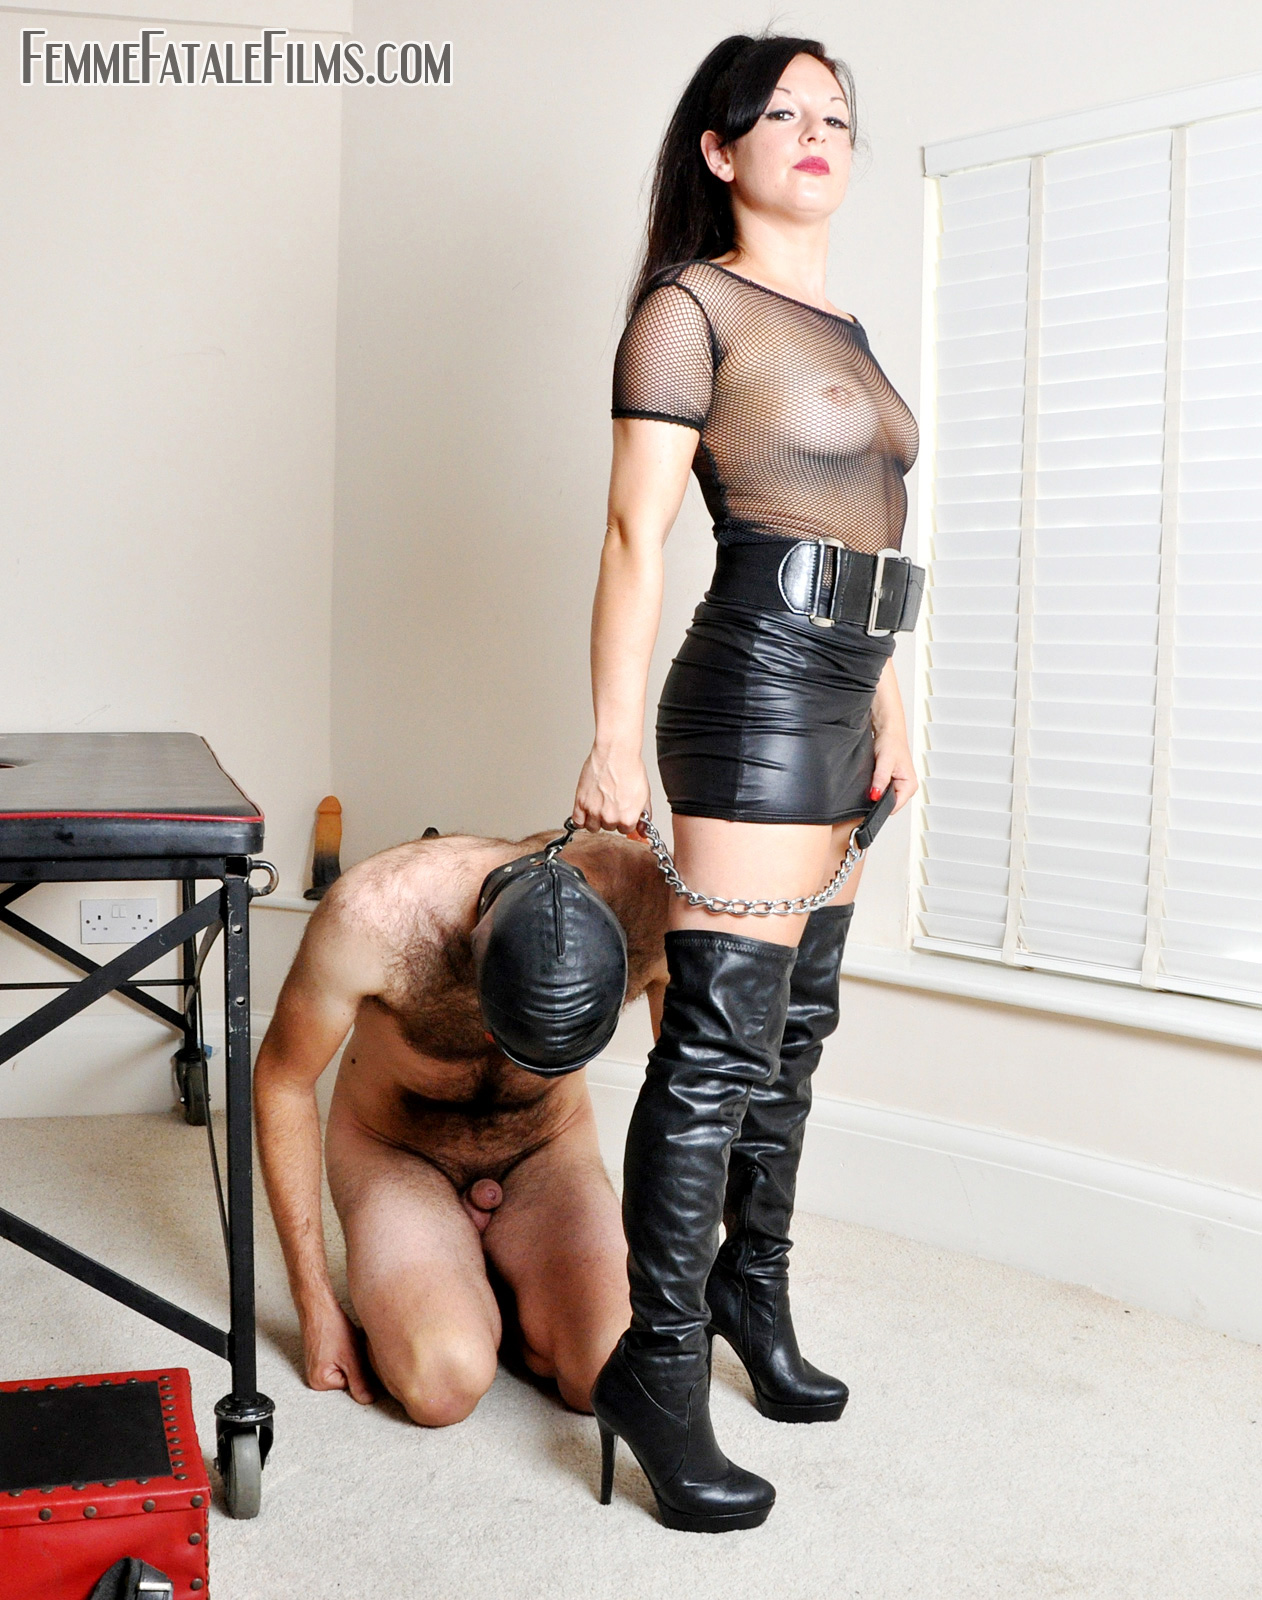 Has your female submission male domination sites courtesy the